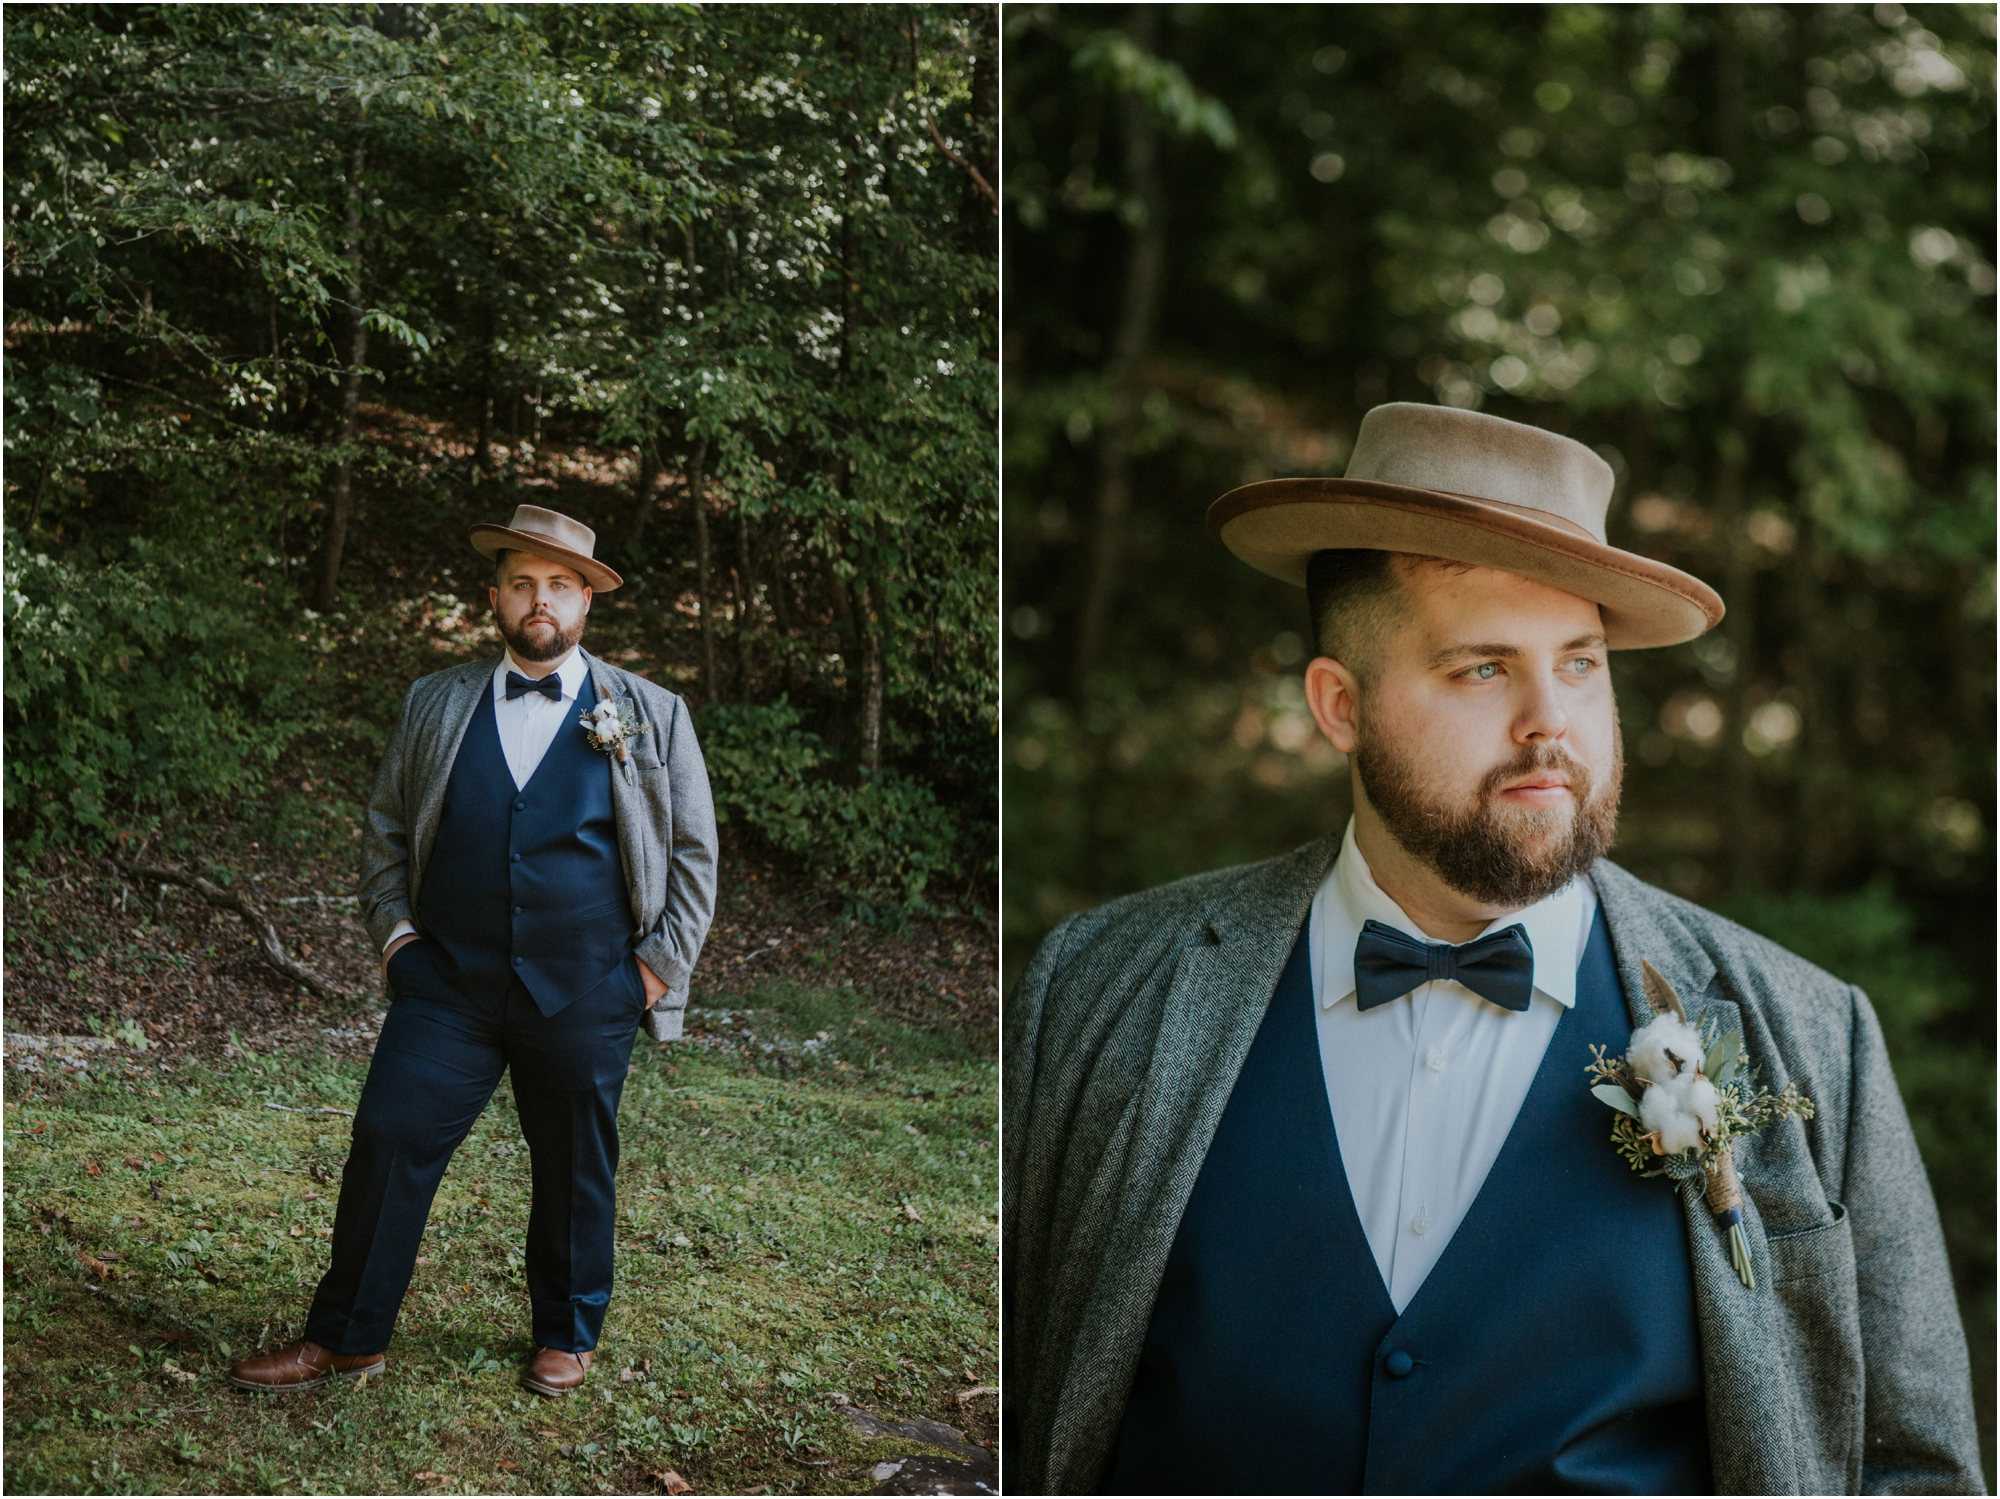 caryville-robbins-middle-tennessee-intimate-cozy-fall-navy-rustic-backyard-wedding_0032.jpg